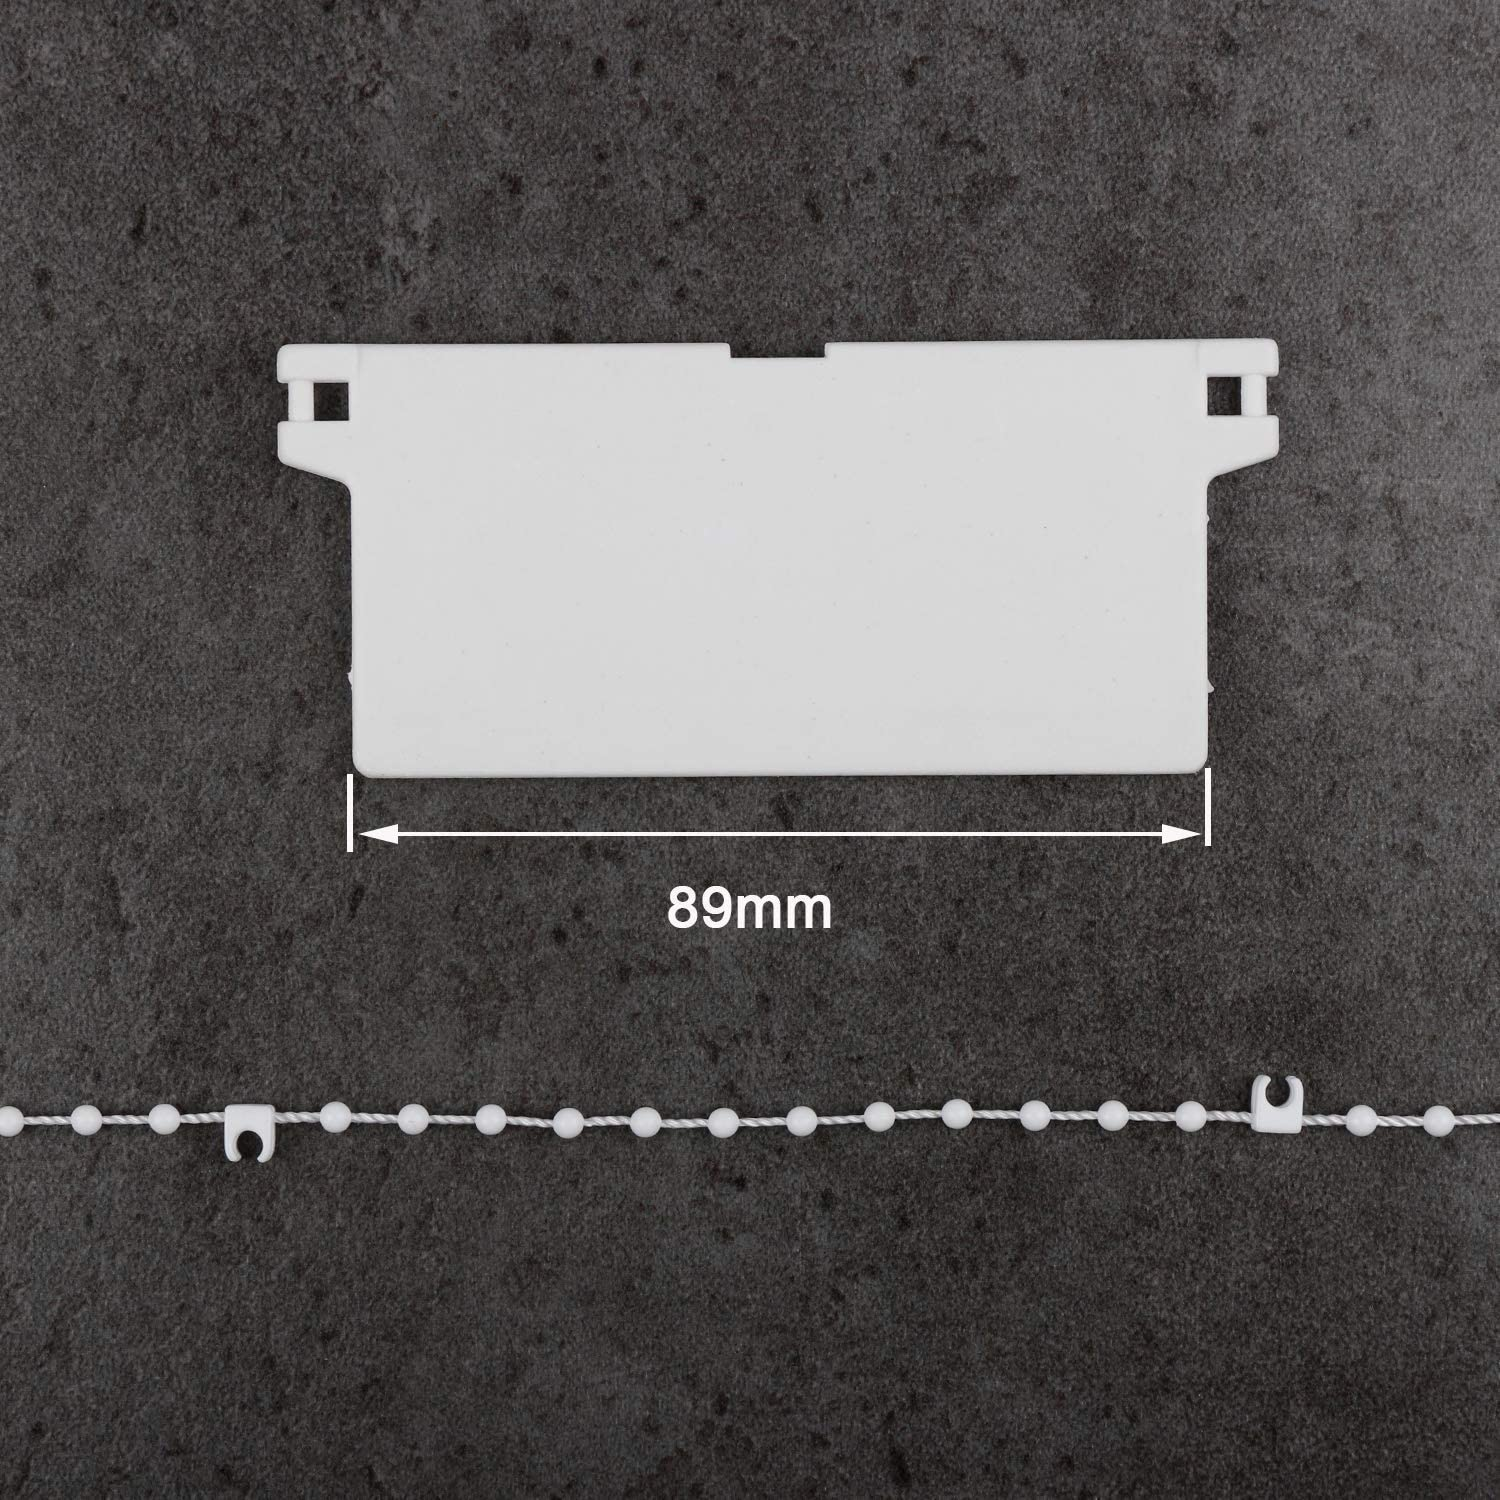 5M, 10Clips EveryHome Vertical Blind Bottom Chain for 3.5 Inch// 89 mm Slats